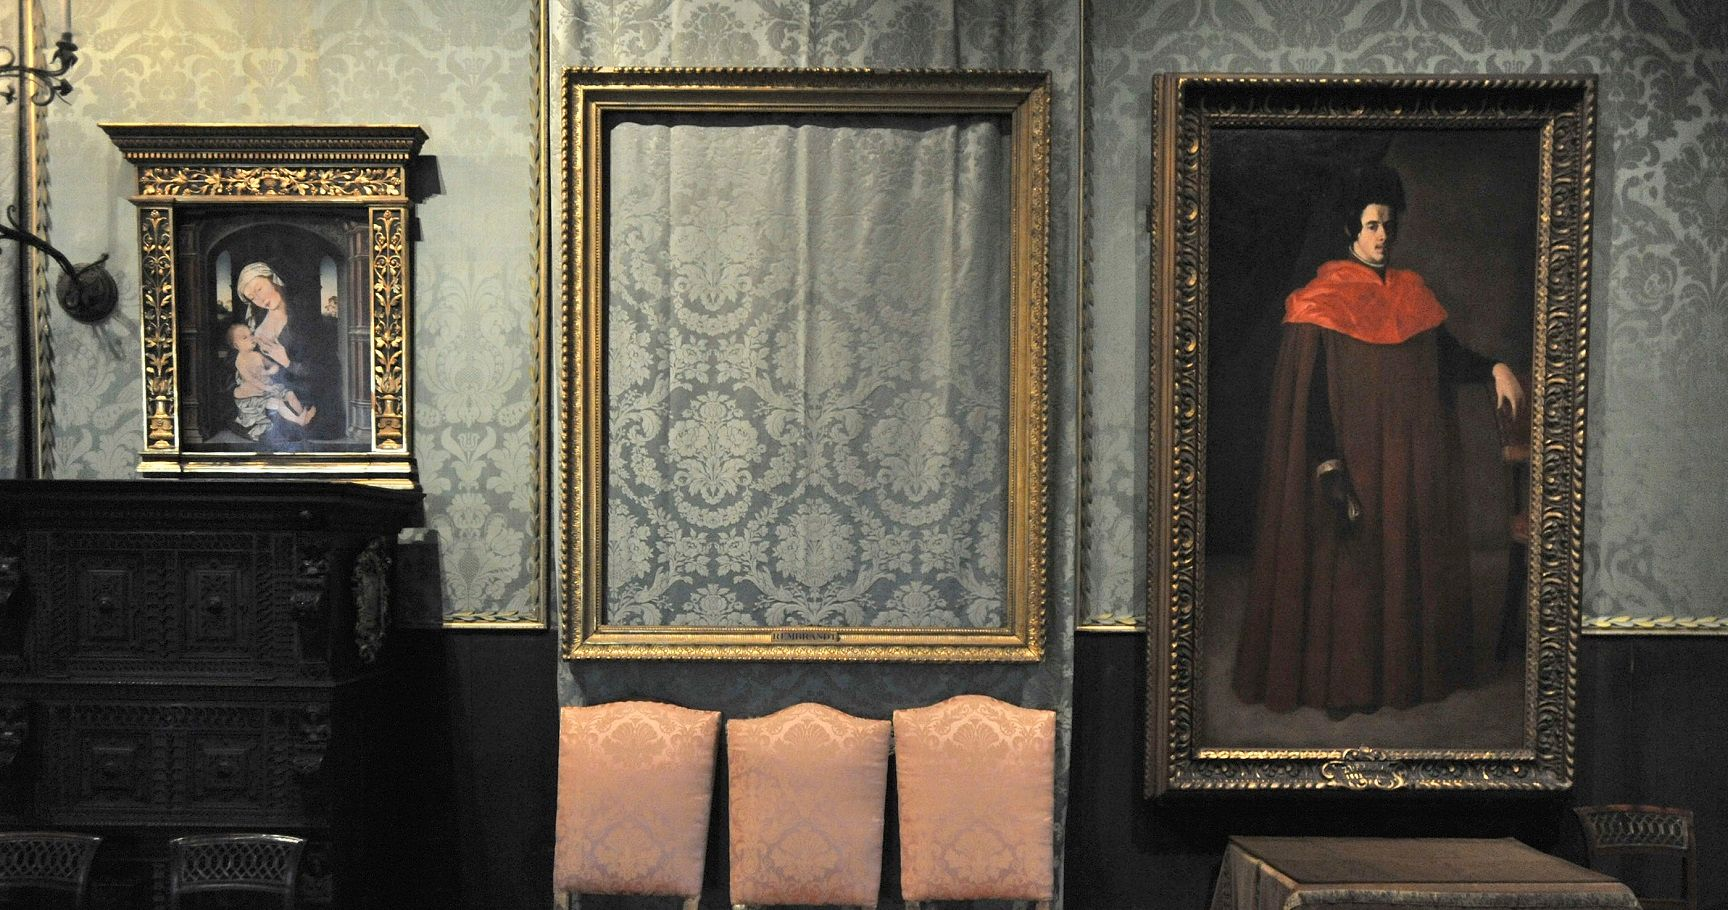 10 of the Greatest Museum Heists in History